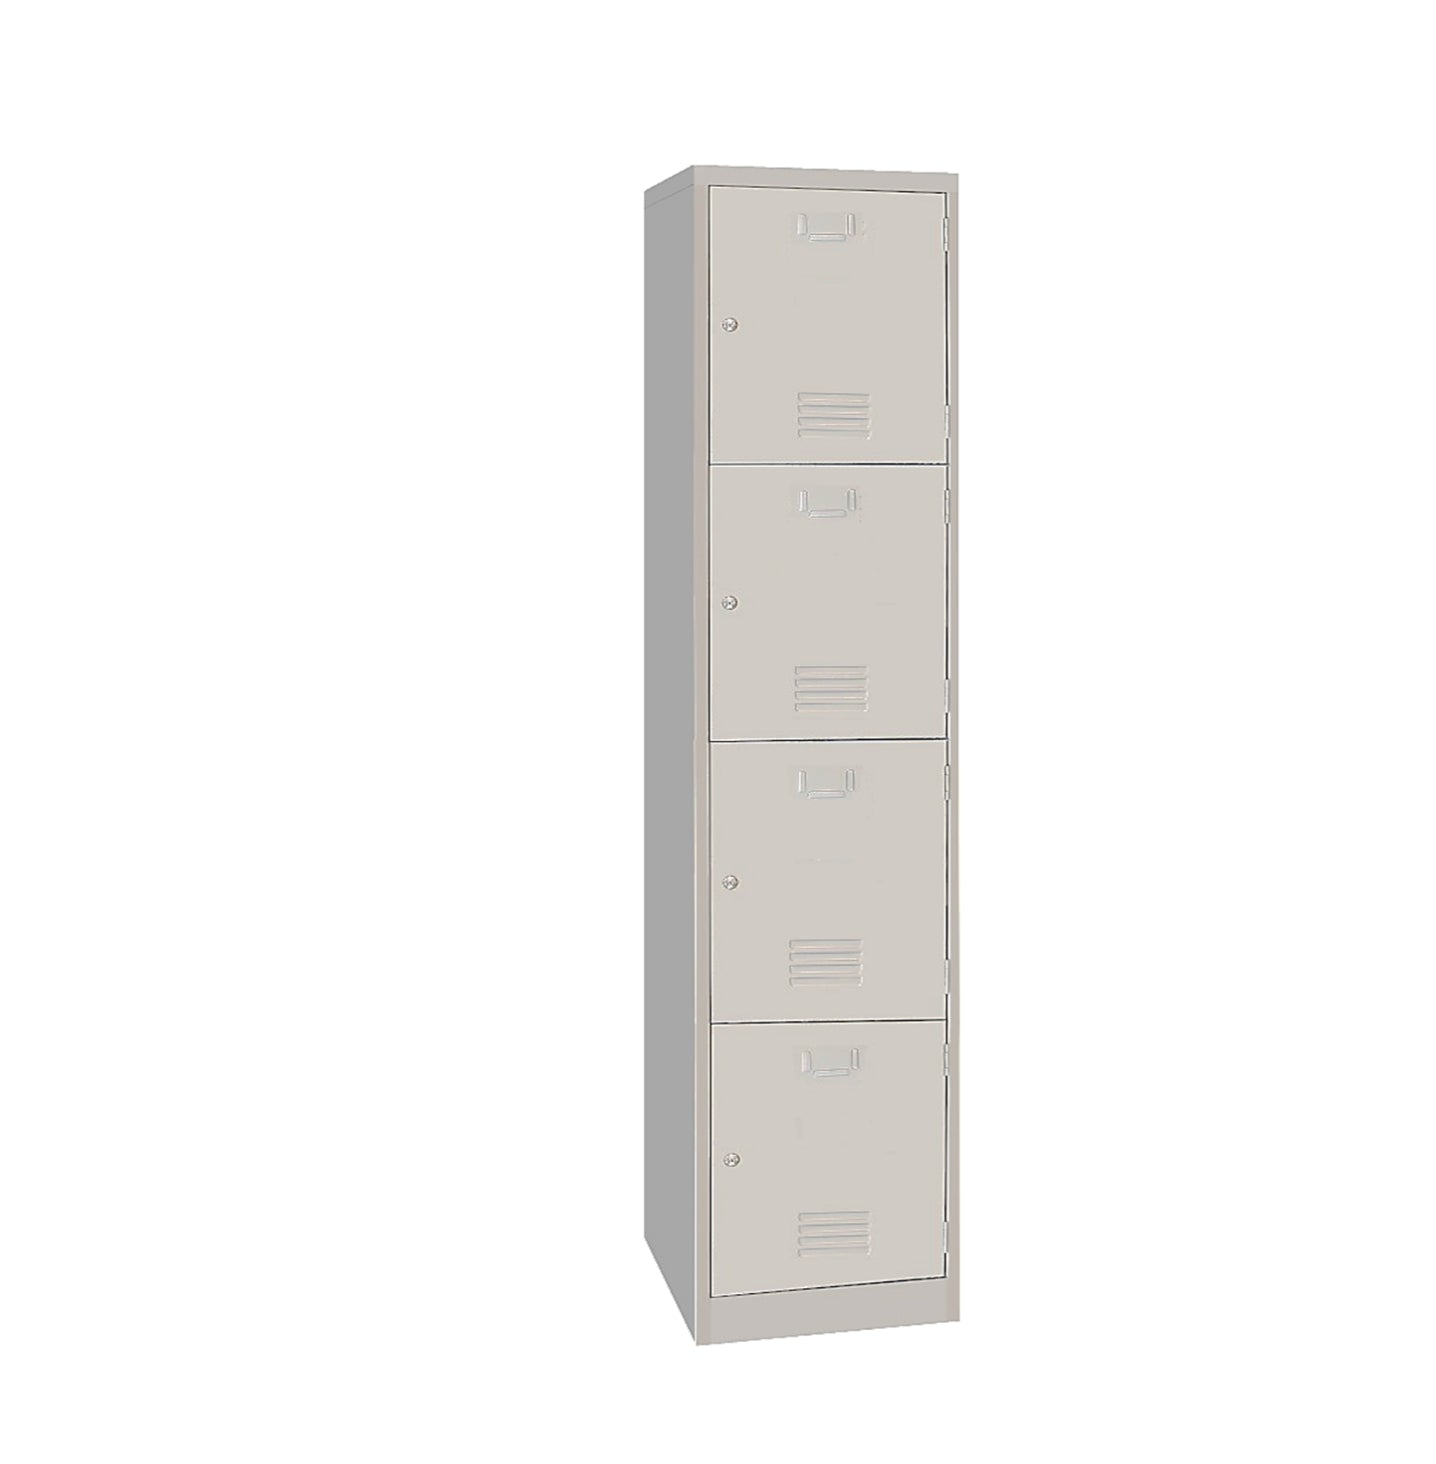 Four Compartments Metal Locker